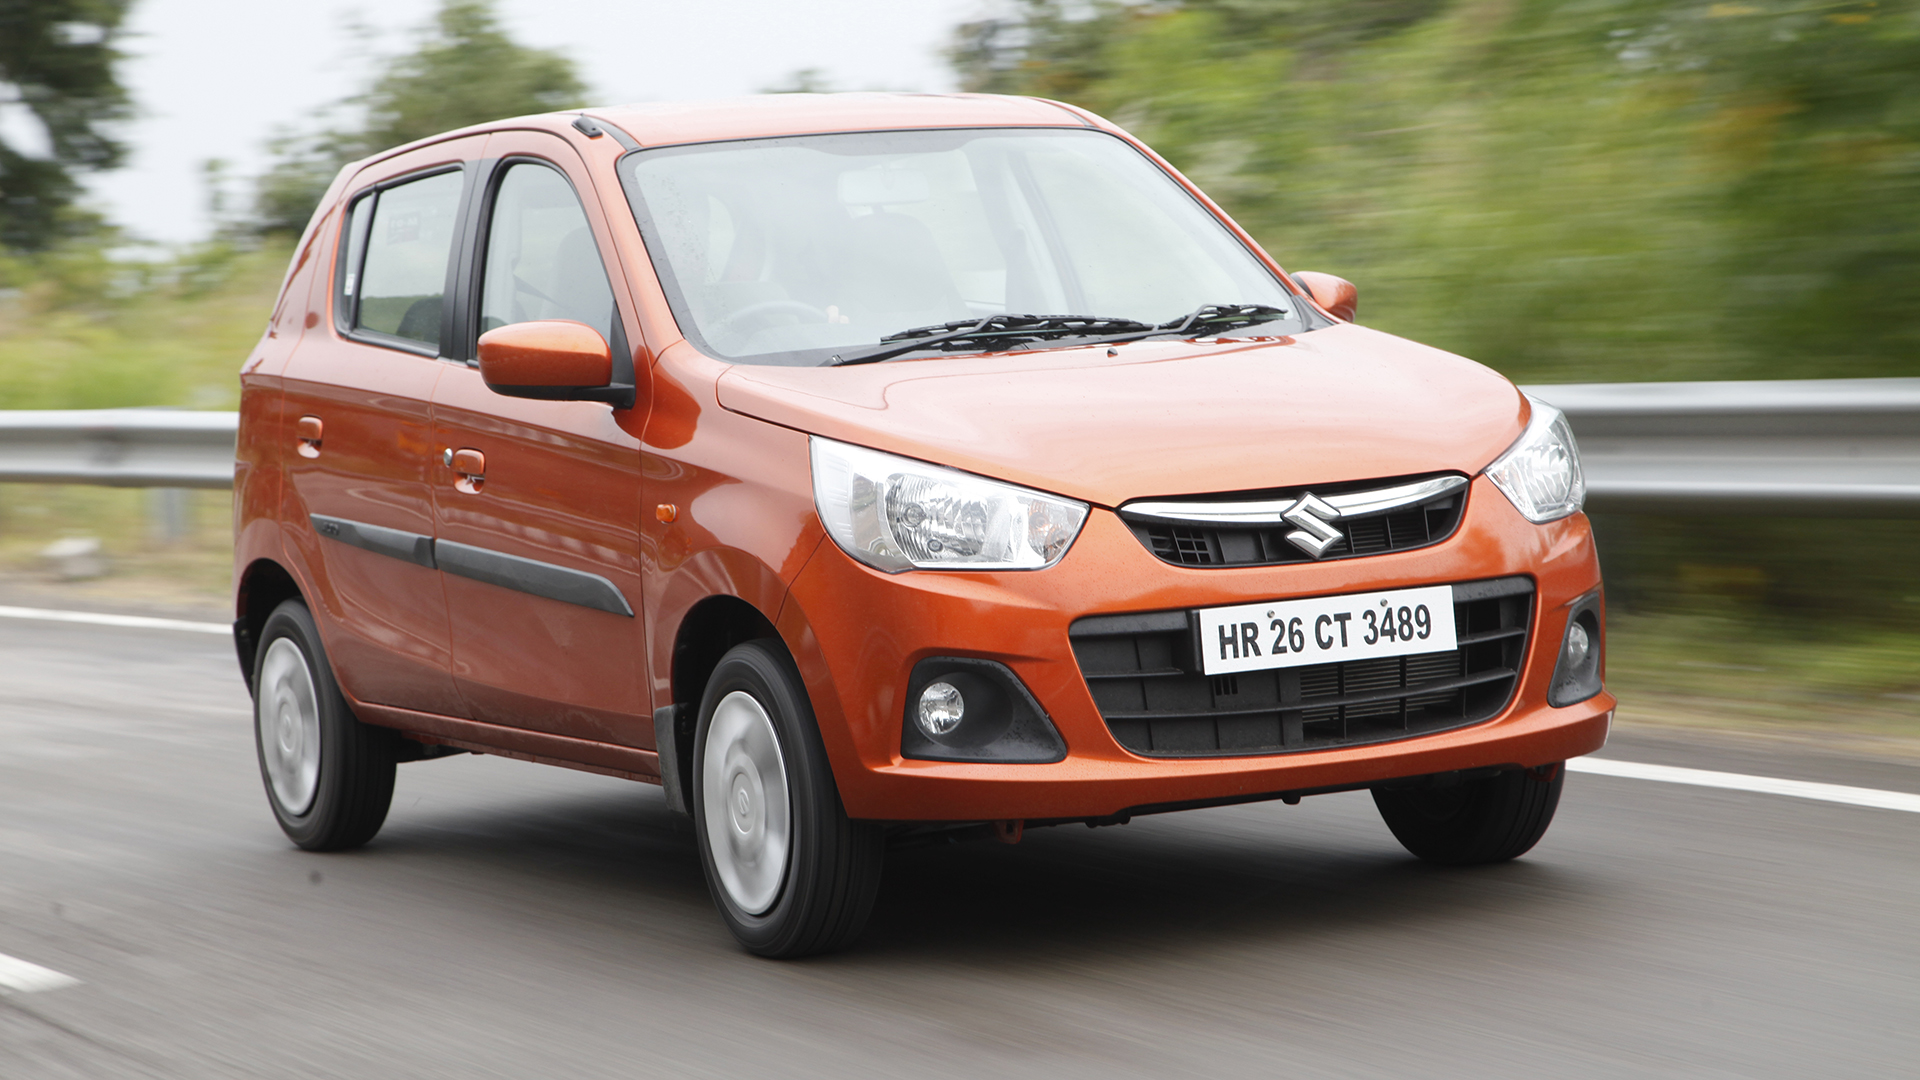 Maruti Suzuki Alto K10 2016 - Price, Mileage, Reviews ...